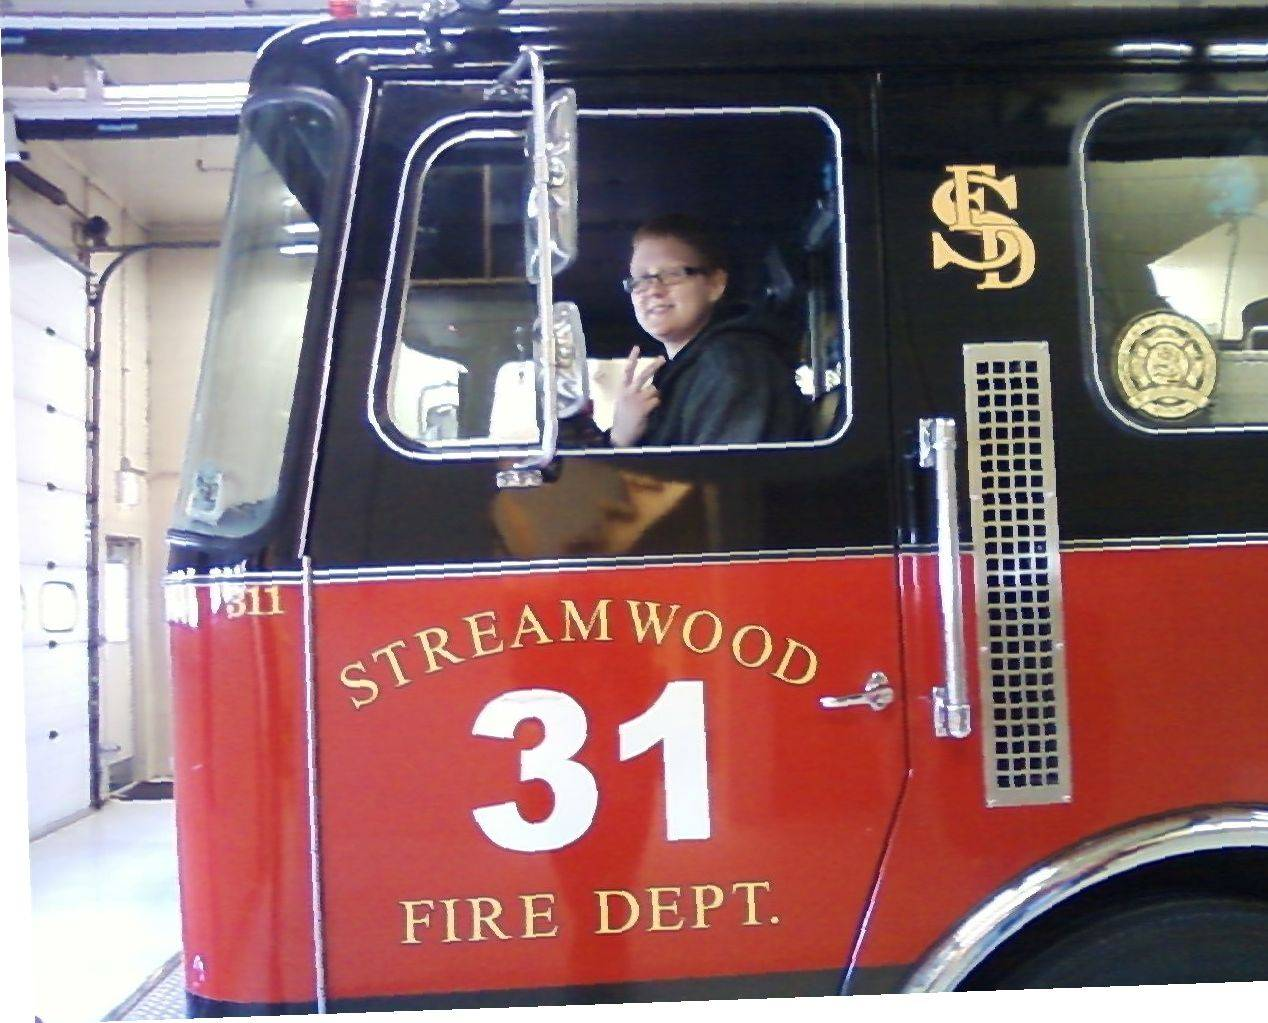 Feeling at home during her tour of a Streamwood fire station, Shelby Williams soon will be taking college classes to fulfill her dream of becoming a firefighter.